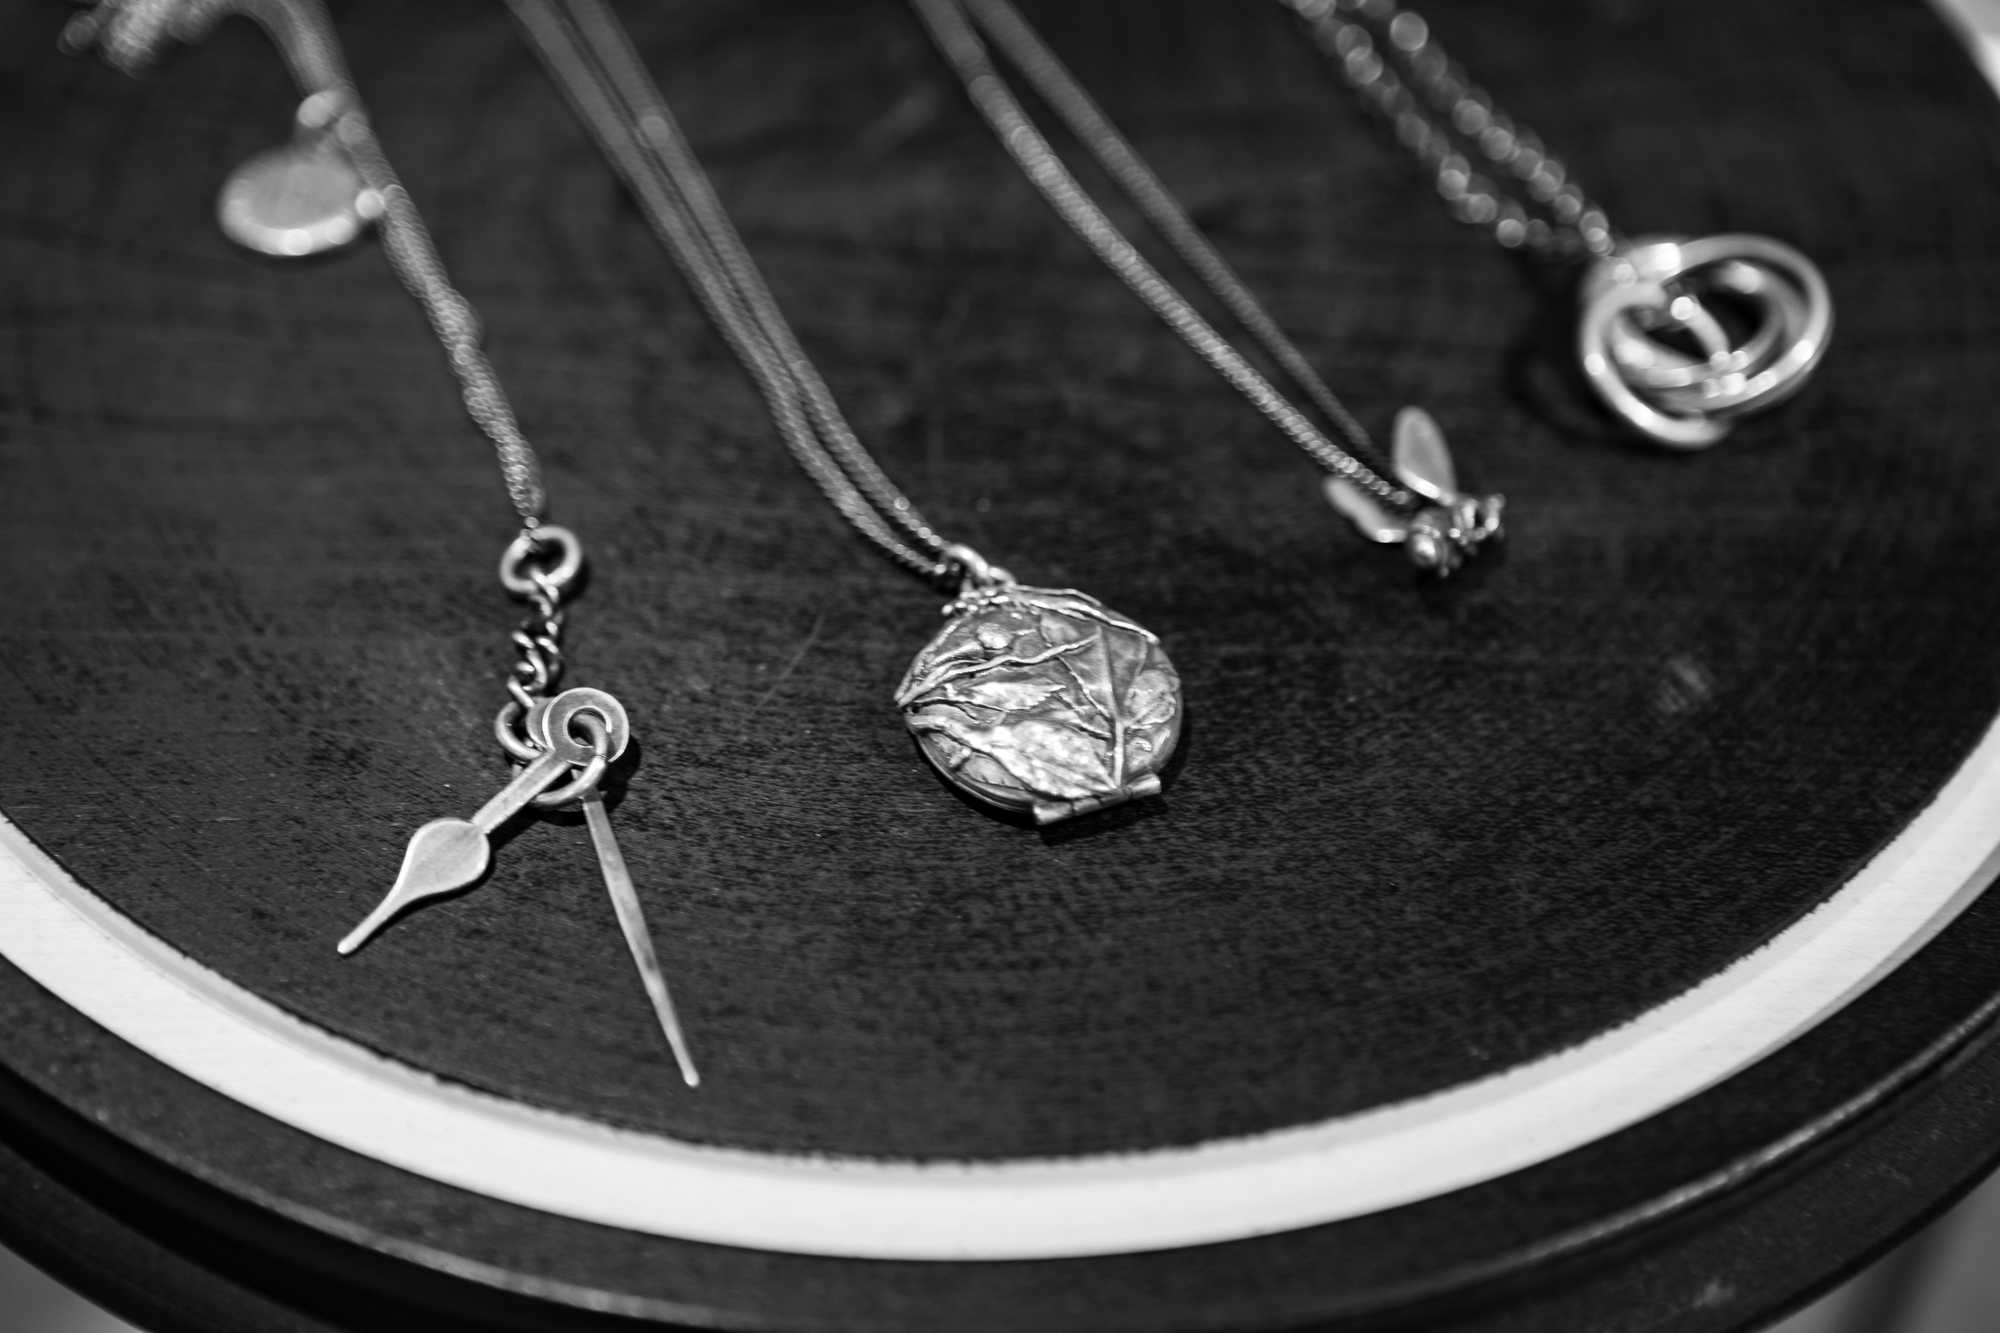 WERKSTATT:MÜNCHEN SHOWROOMMedallion Rose Bud Necklace Fine Chain Bee Necklace and Four Rings Necklace on Display FW20